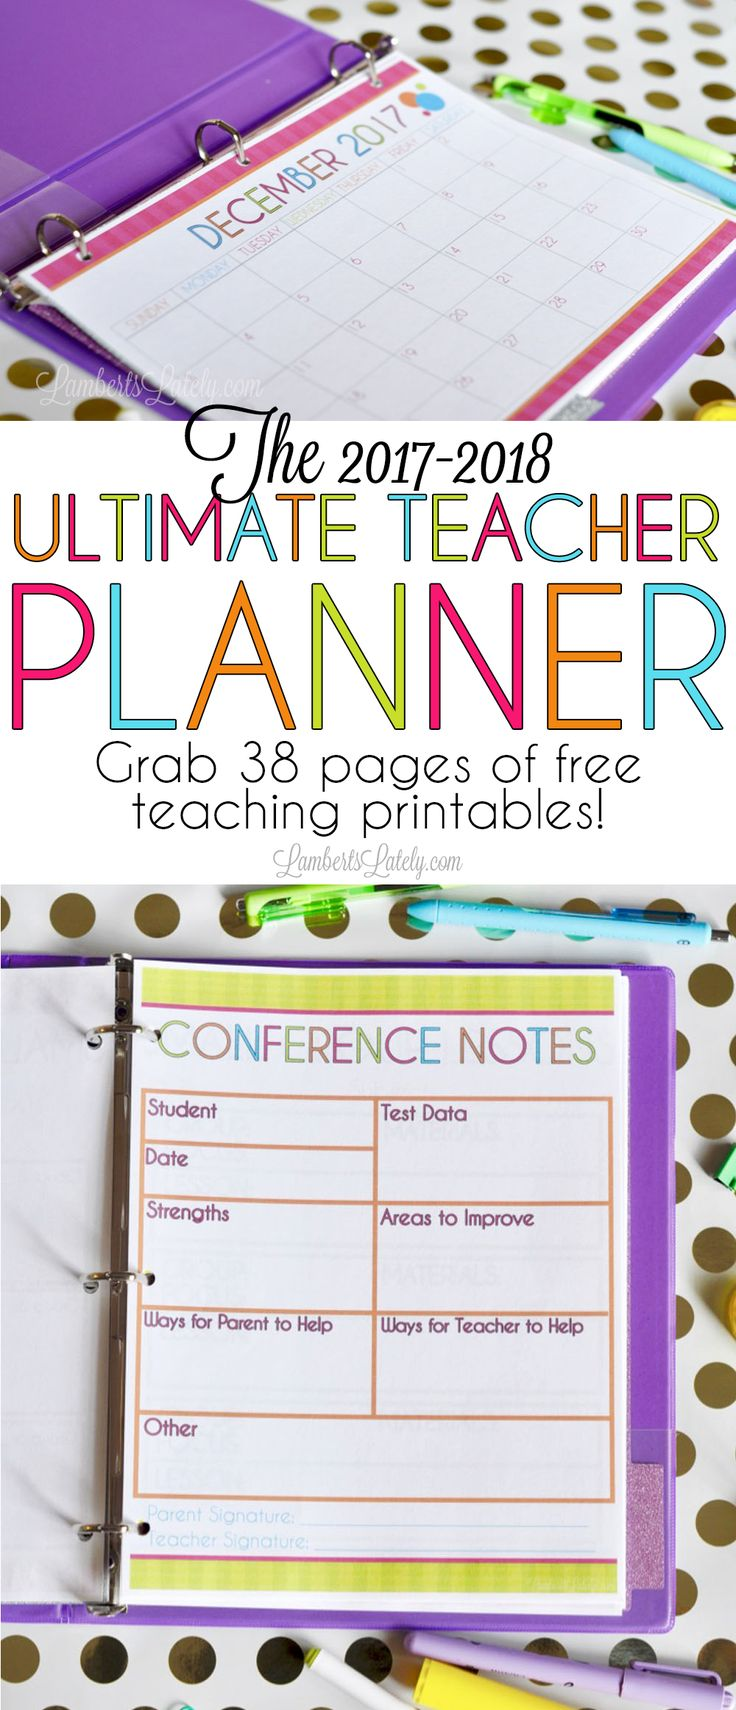 I love this bright and colorful 2017-2018 printable teacher planner!  It has so many useful pages, like a grade tracker, weekly/monthly calendars, lesson plans, and small group tracker (all with pretty bright & colorful striped backgrounds).  The best part is this template is free!